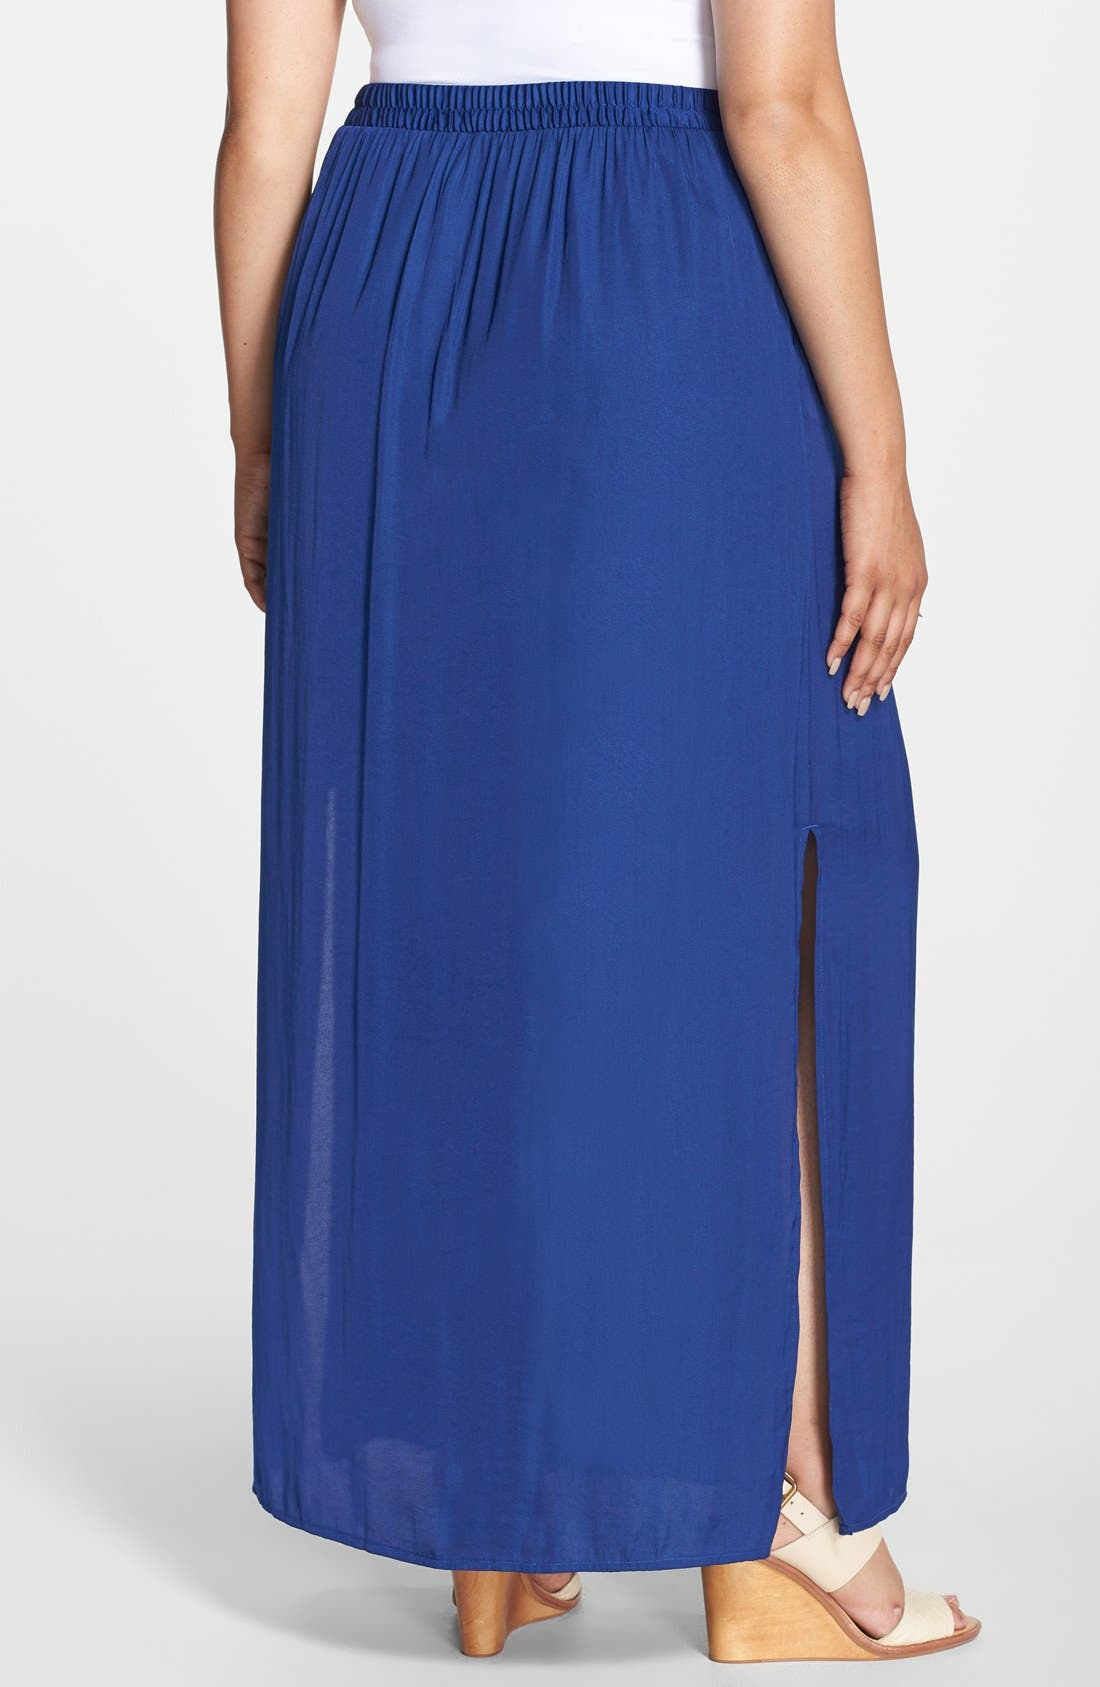 'Tarot' Side Slit Maxi Skirt,                             Alternate thumbnail 3, color,                             419